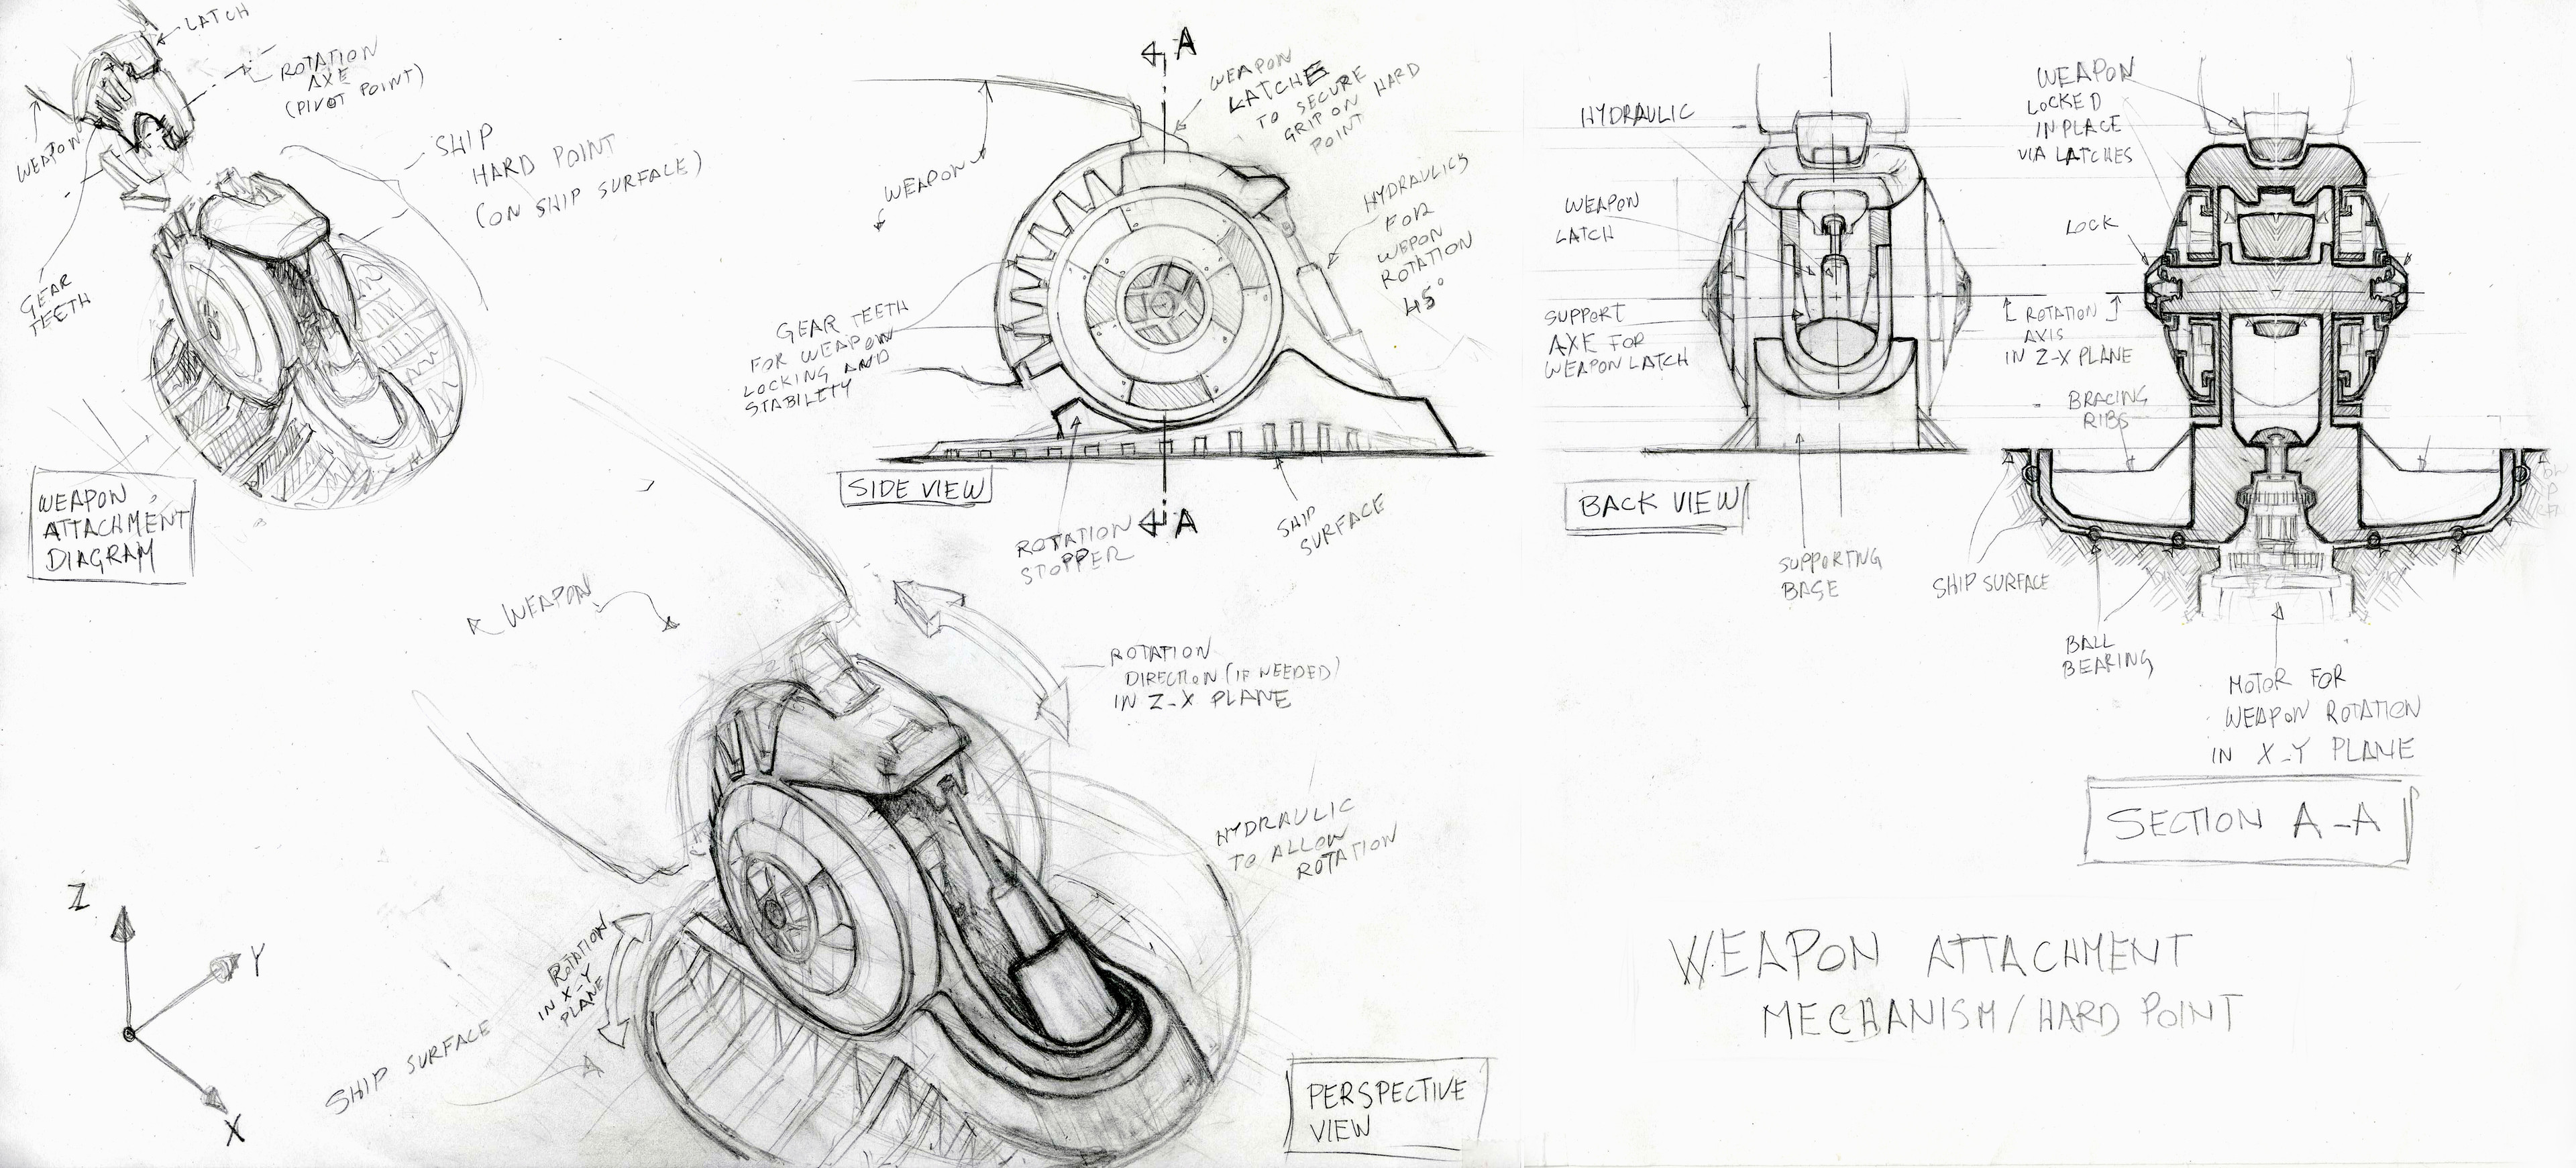 Weapon Attachment system Concept.